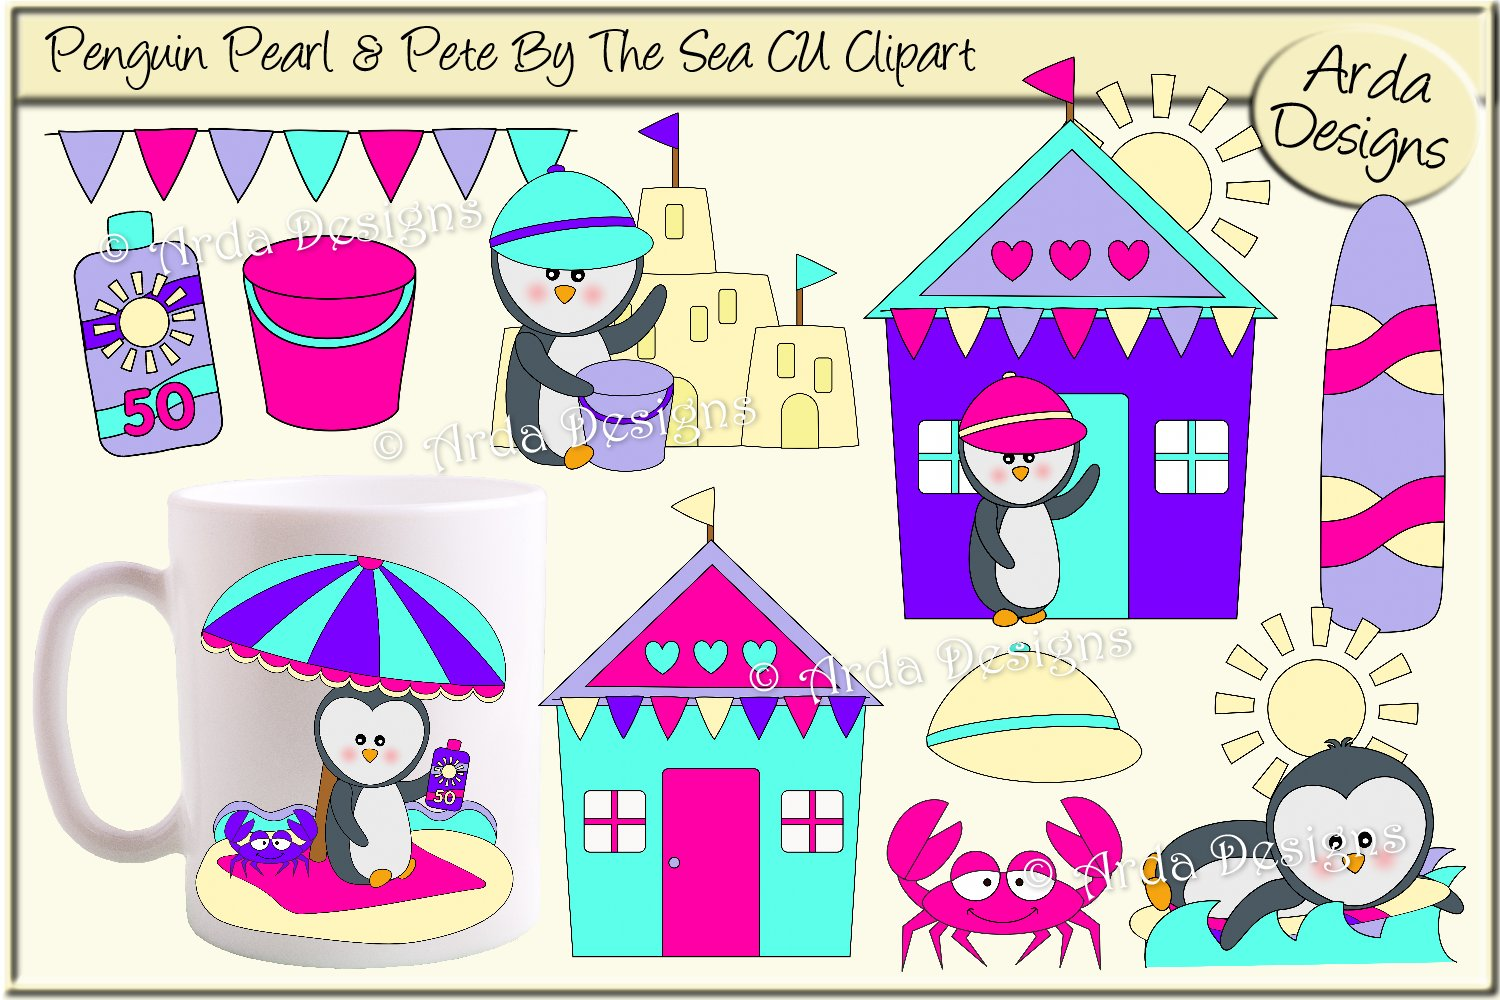 Download Free Penguin Pearl Pete By The Sea Clipart Graphic By Arda Designs for Cricut Explore, Silhouette and other cutting machines.